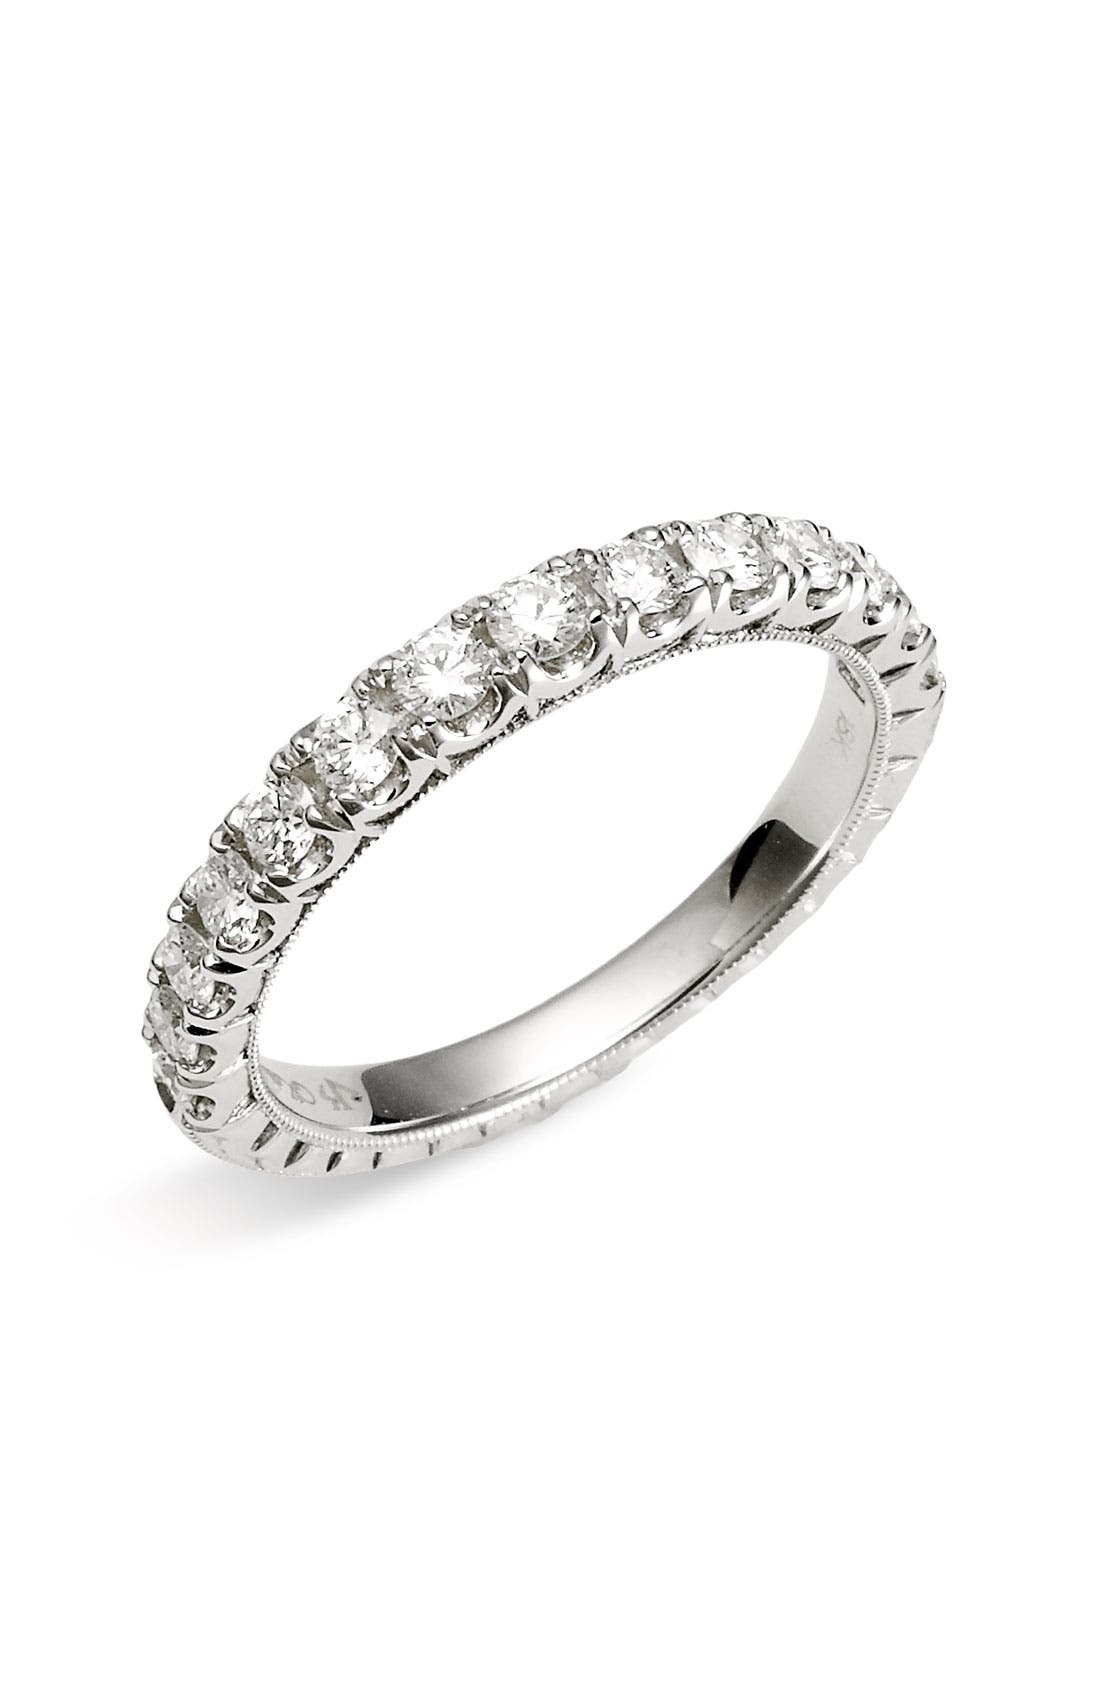 Alternate Image 1 Selected - Jack Kelége 'Romance' Diamond Ring